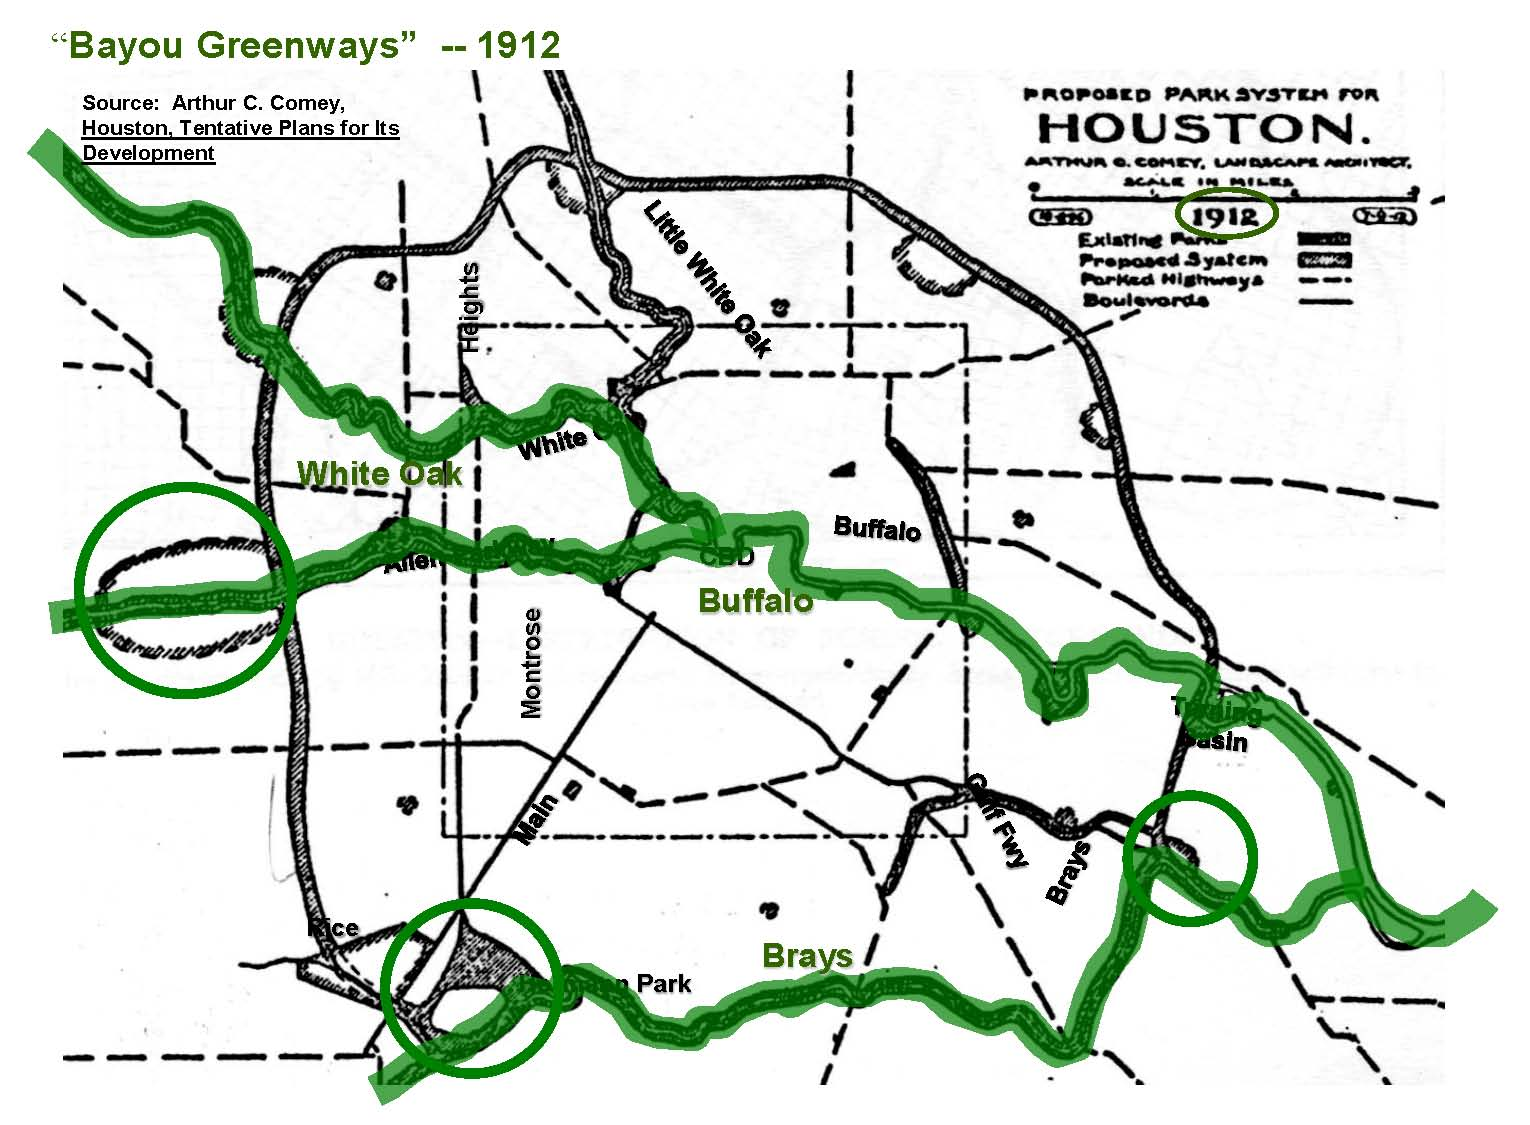 map of Bayou Greenway 1912